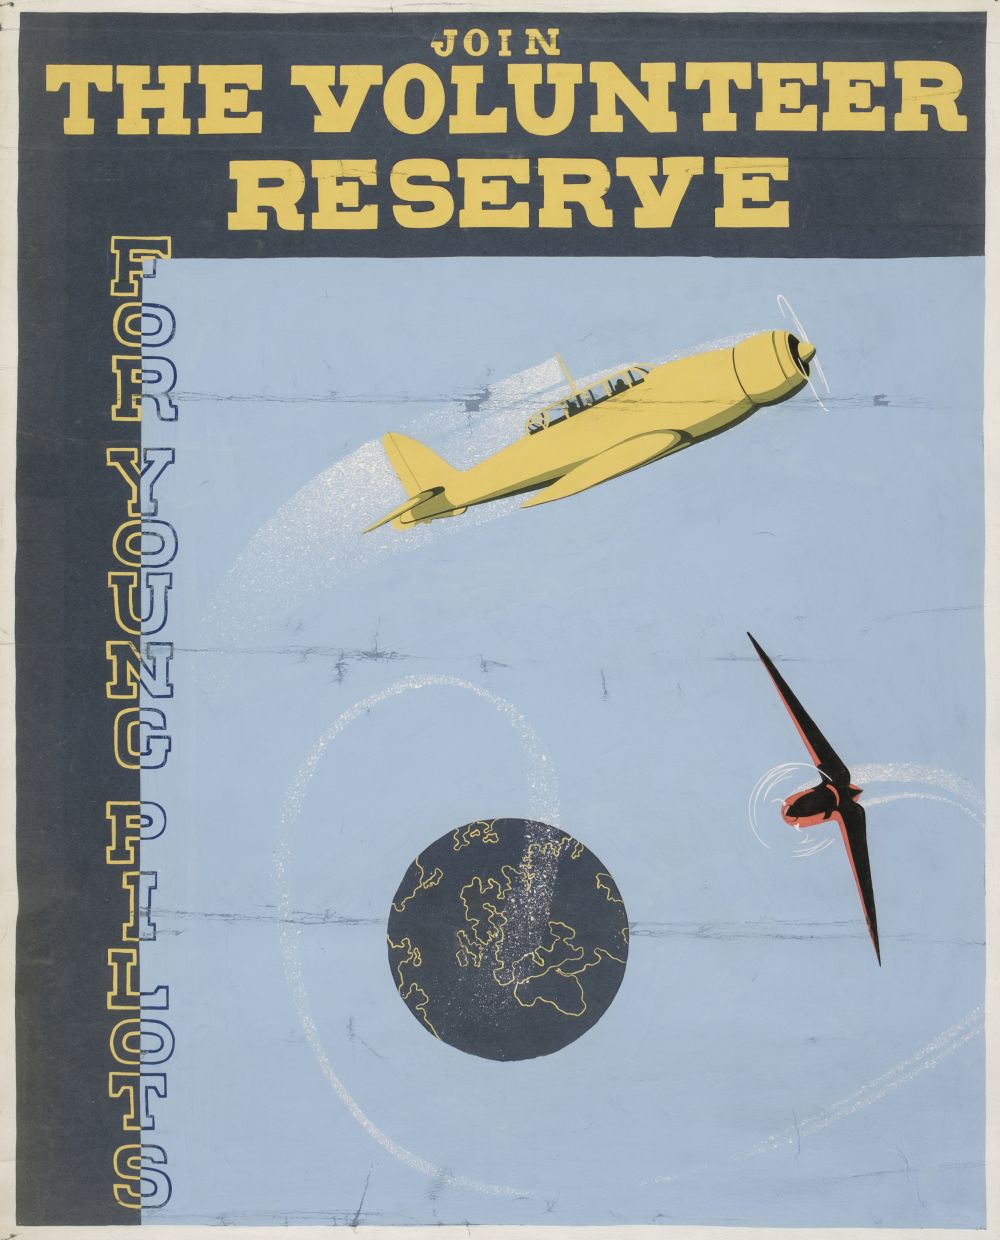 * WWII RAF Posters - The Volunteer Reserve - Image 2 of 2